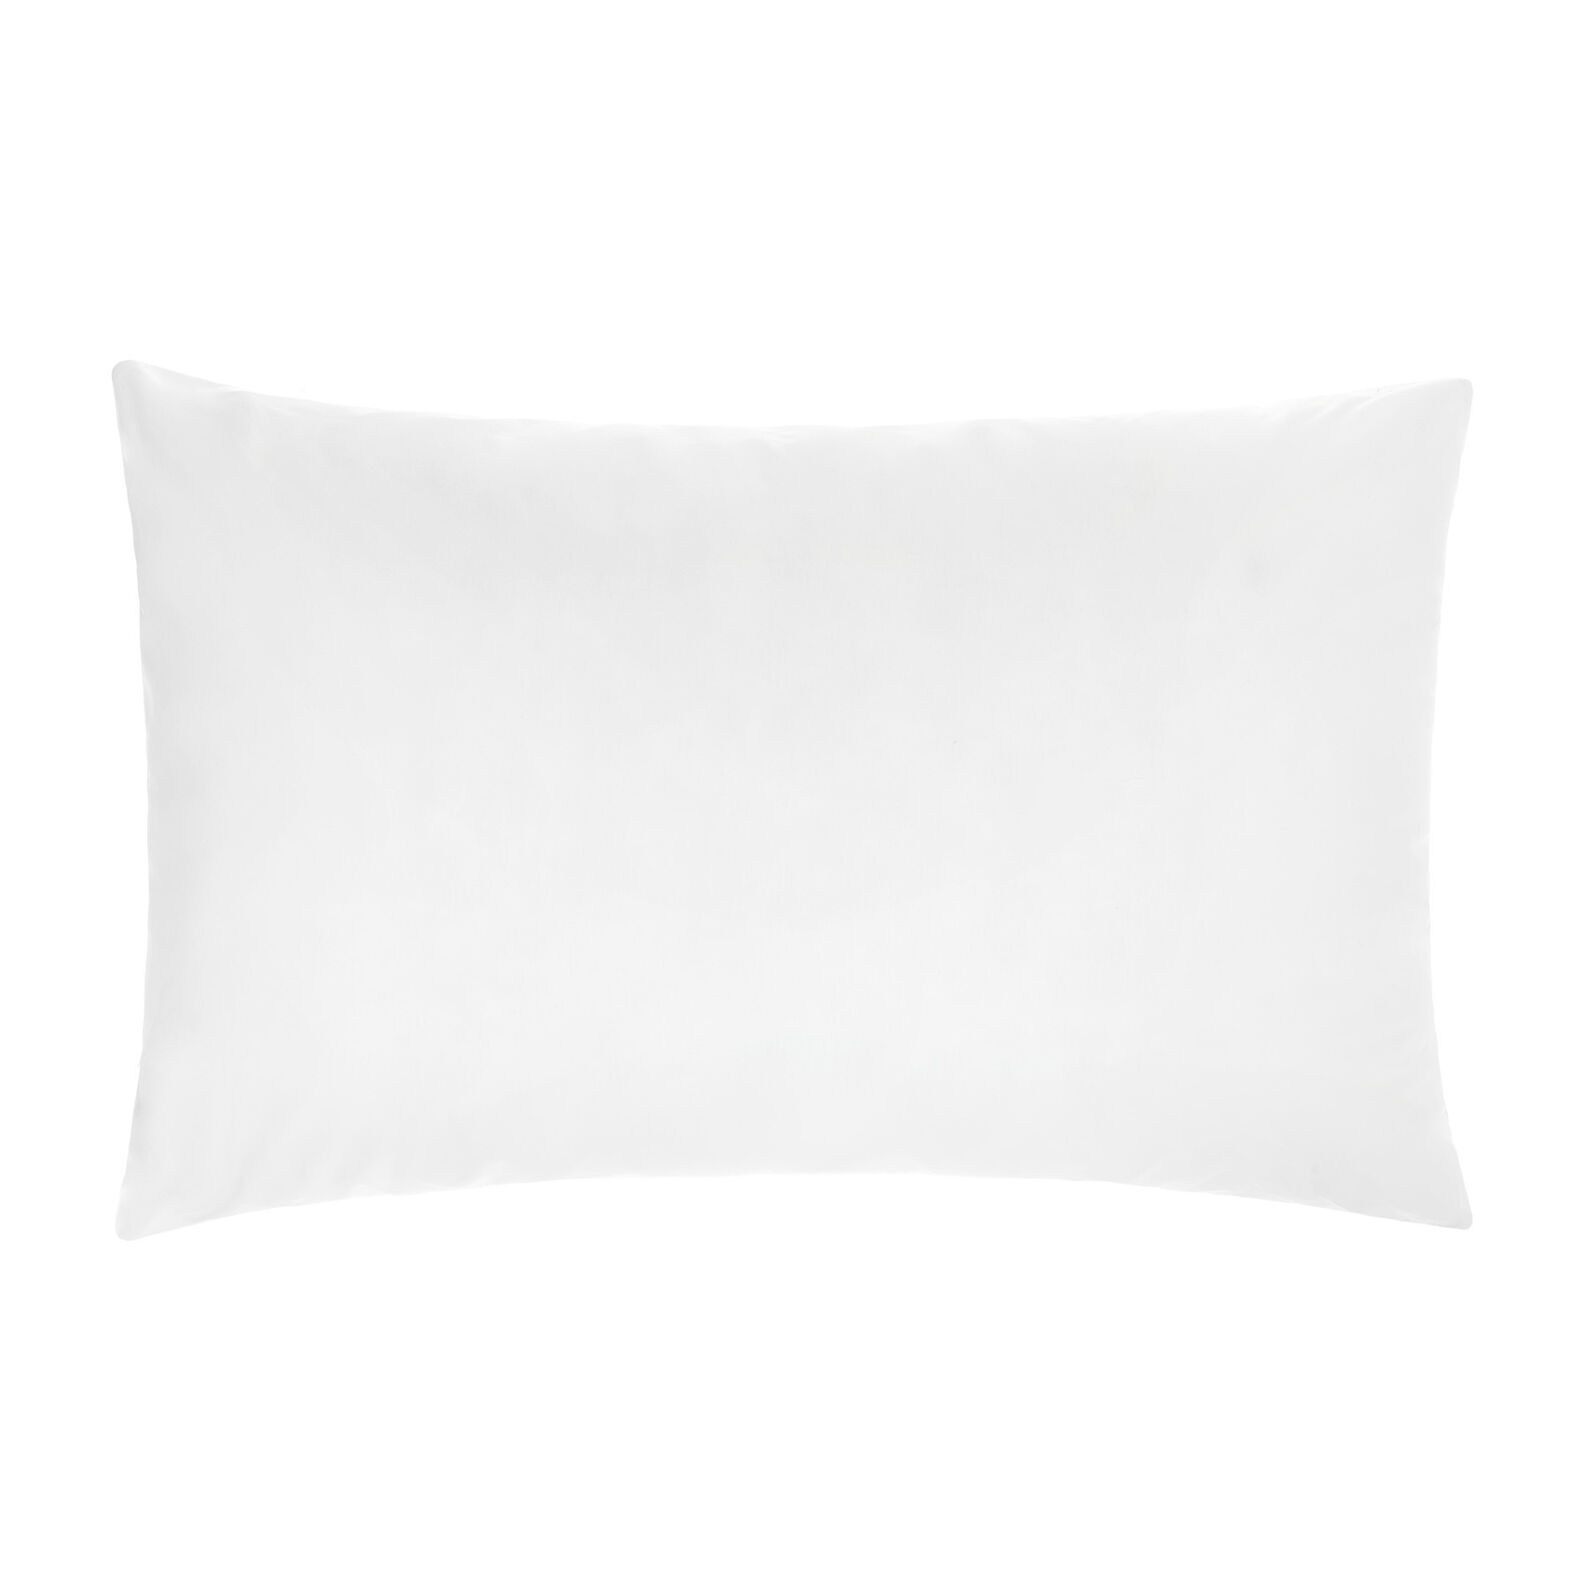 STOP OCEAN PLASTIC Pillow Made in Italy